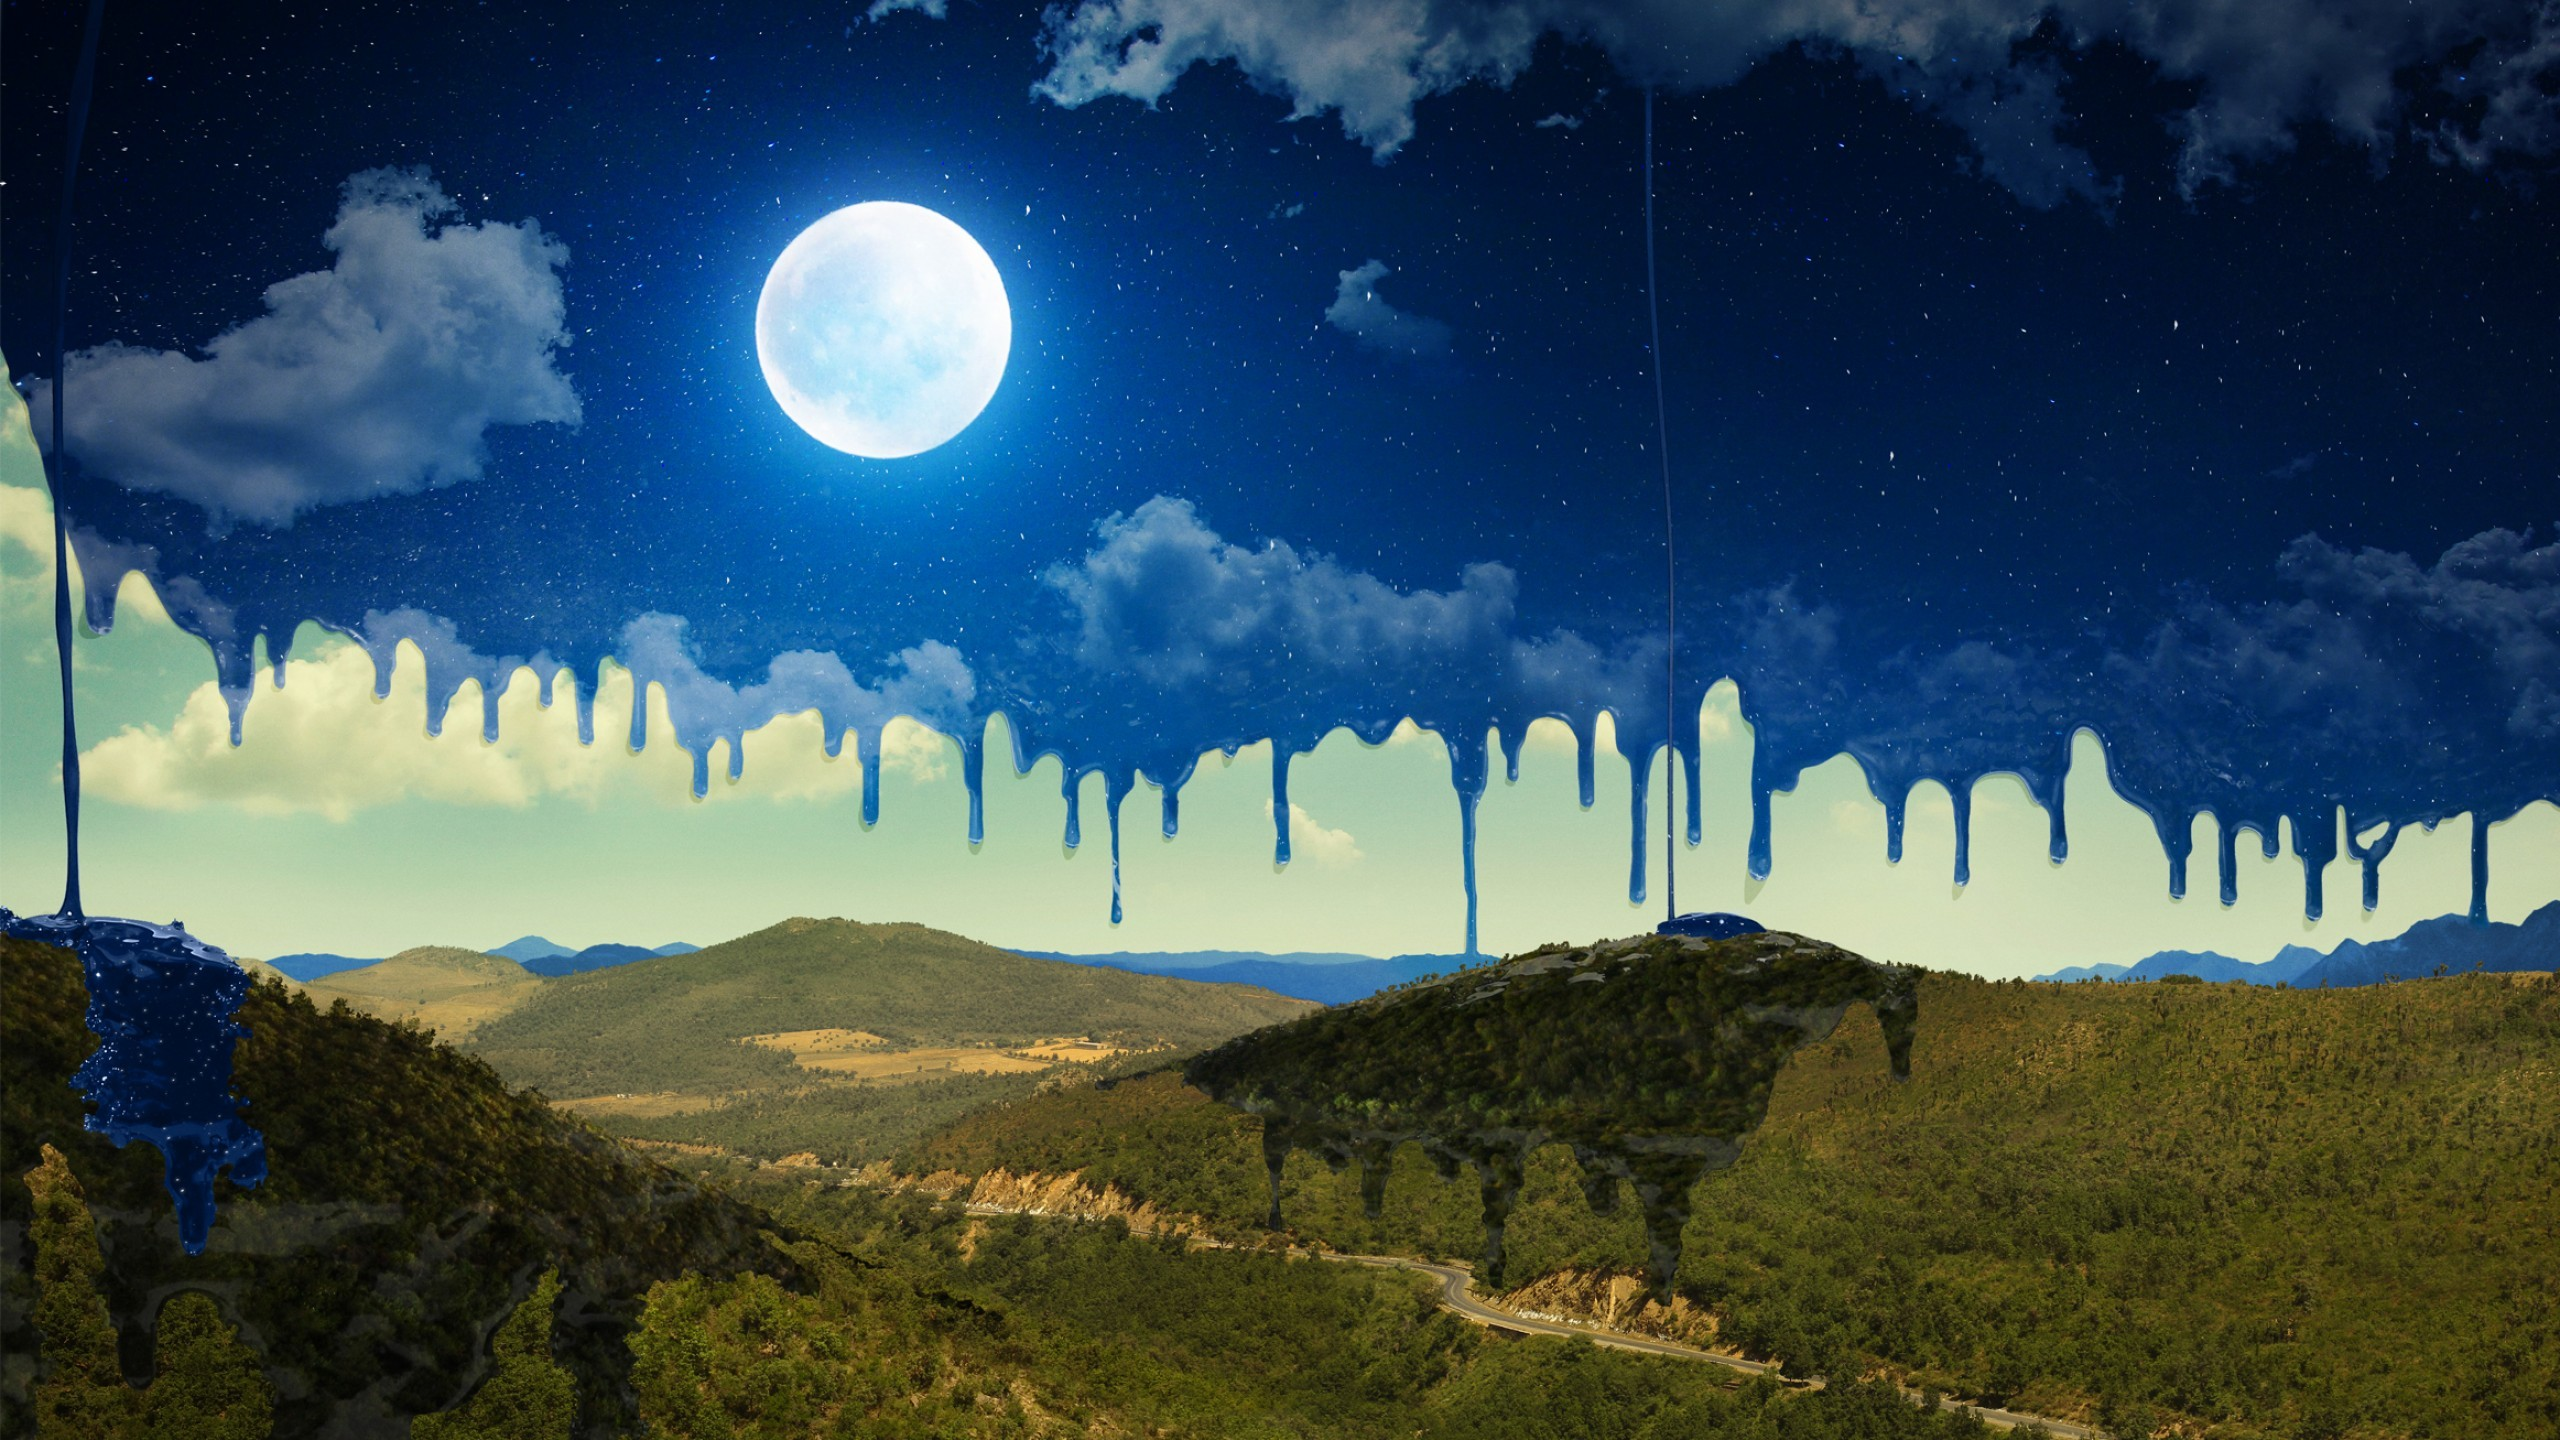 Wallpaper Moon Mountains Night Art Hd Nature 15555